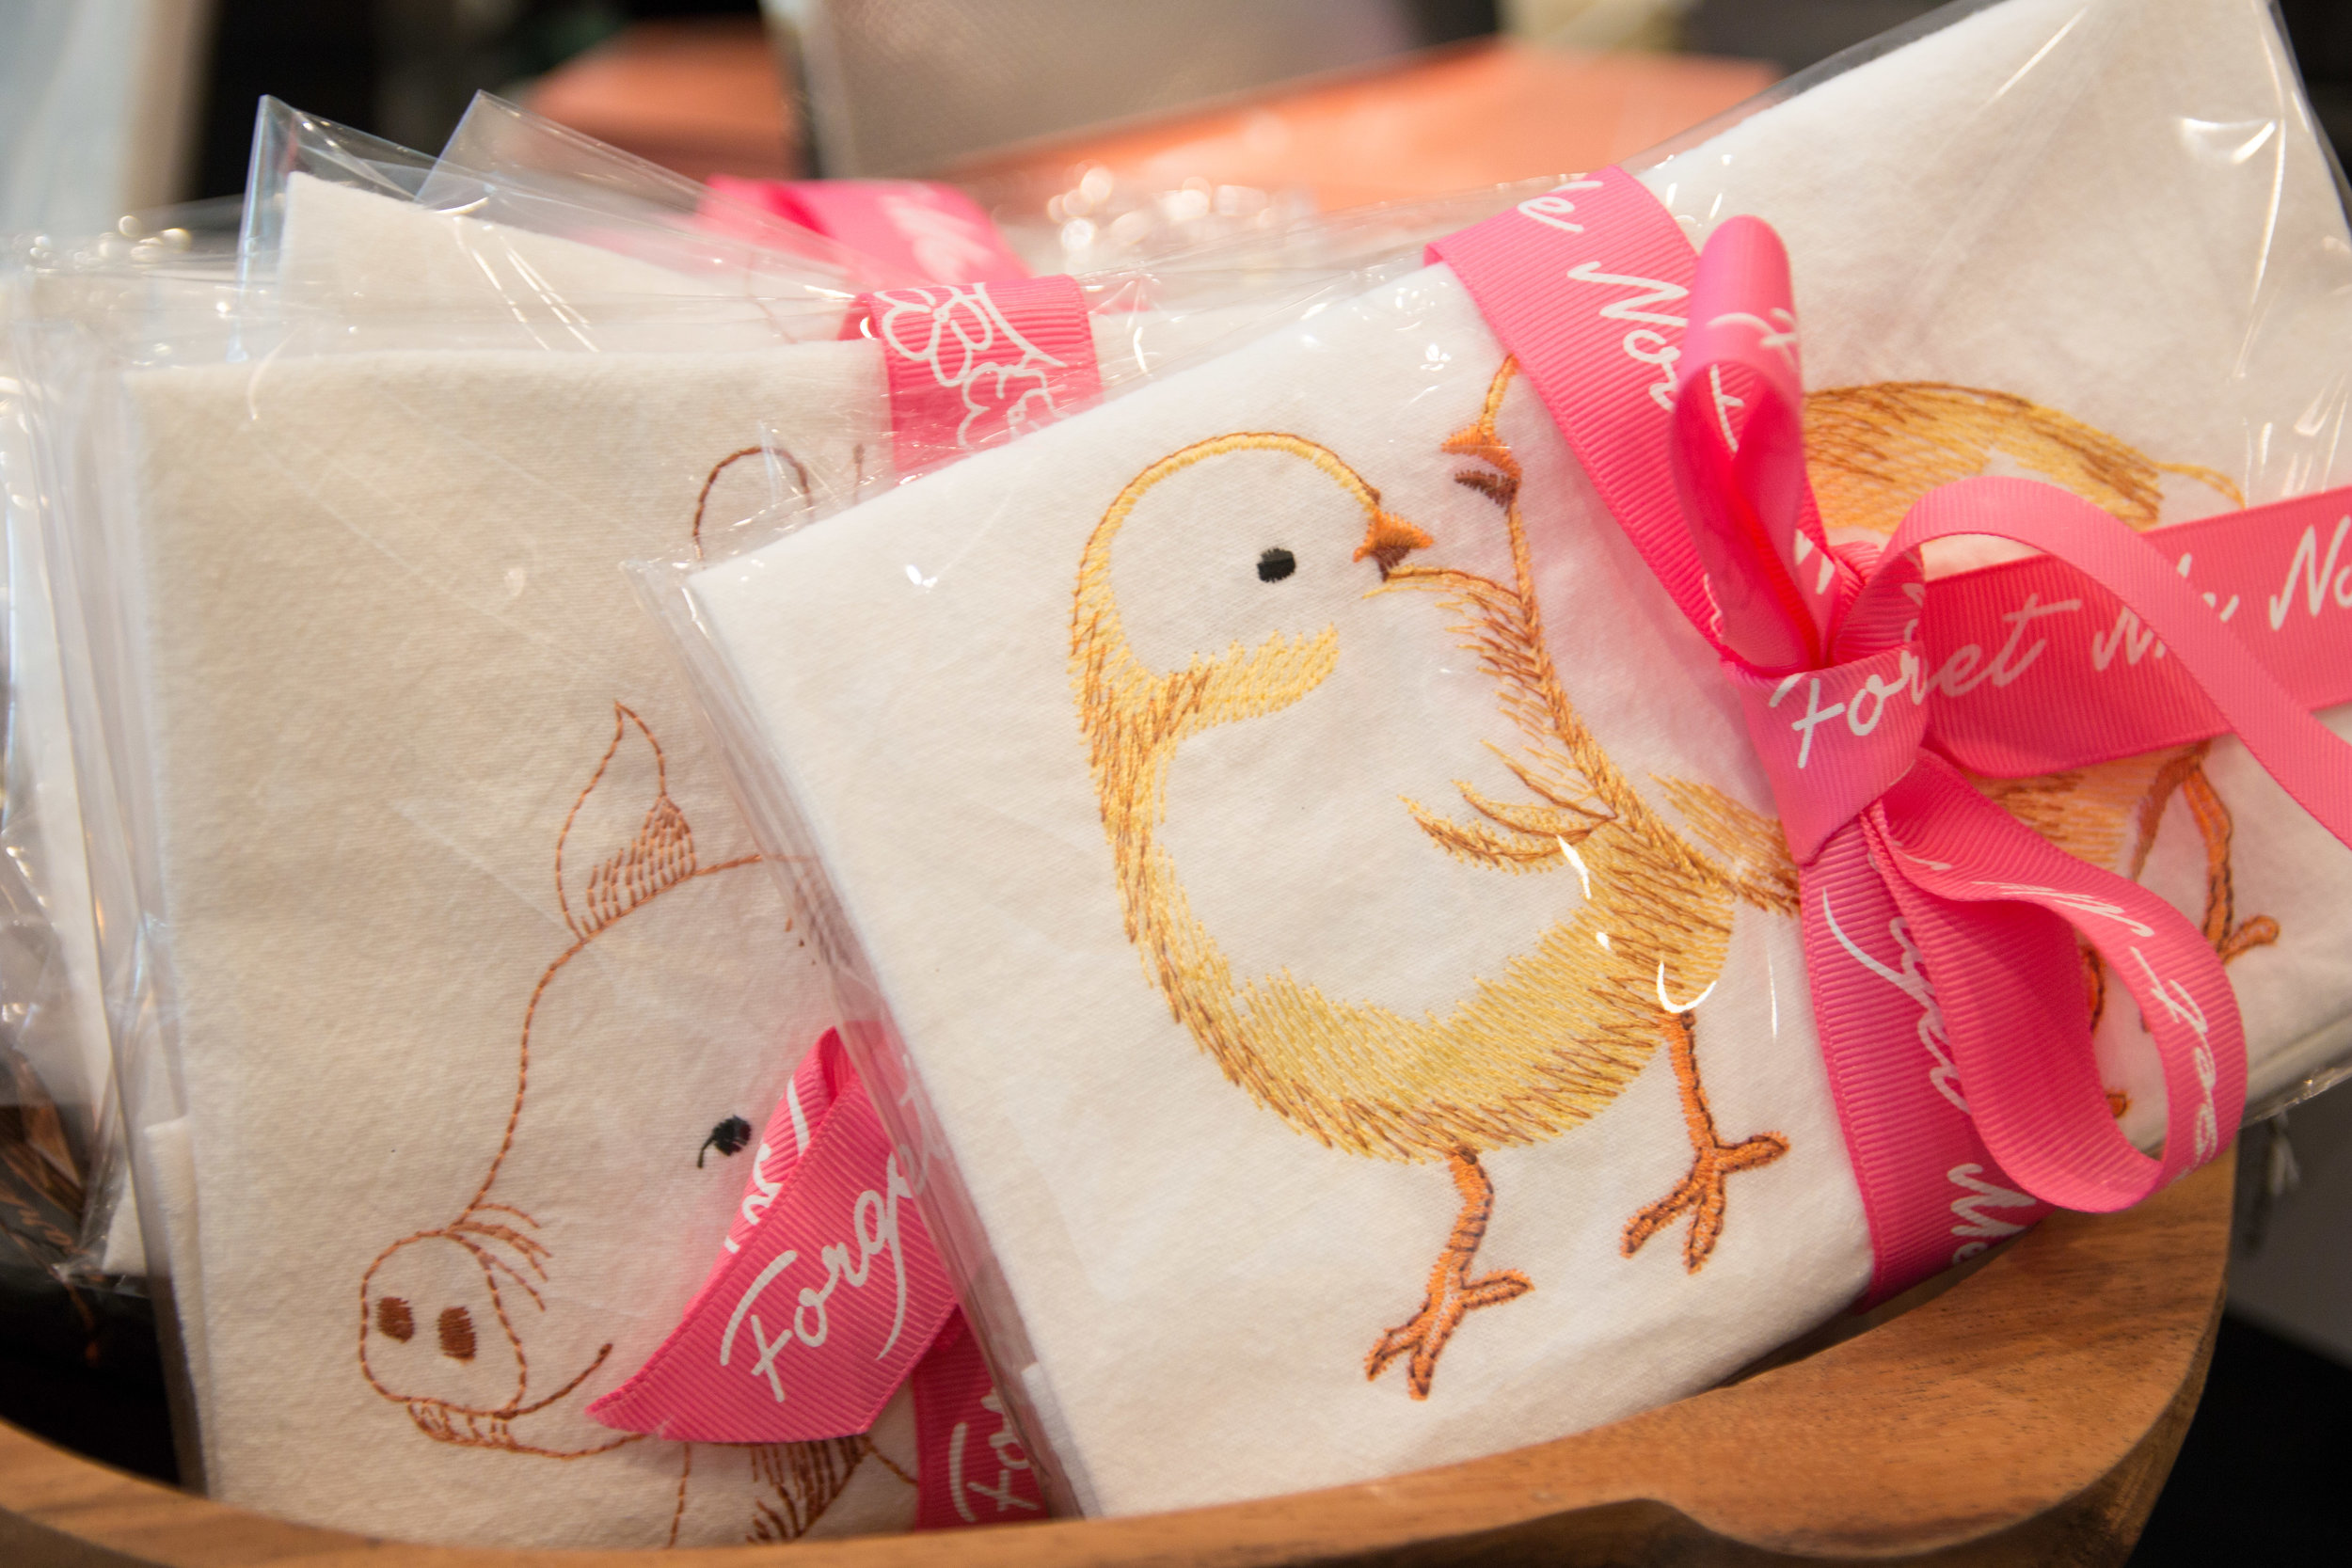 Grab-And-Go kitchen towels are perfect little host gifts!